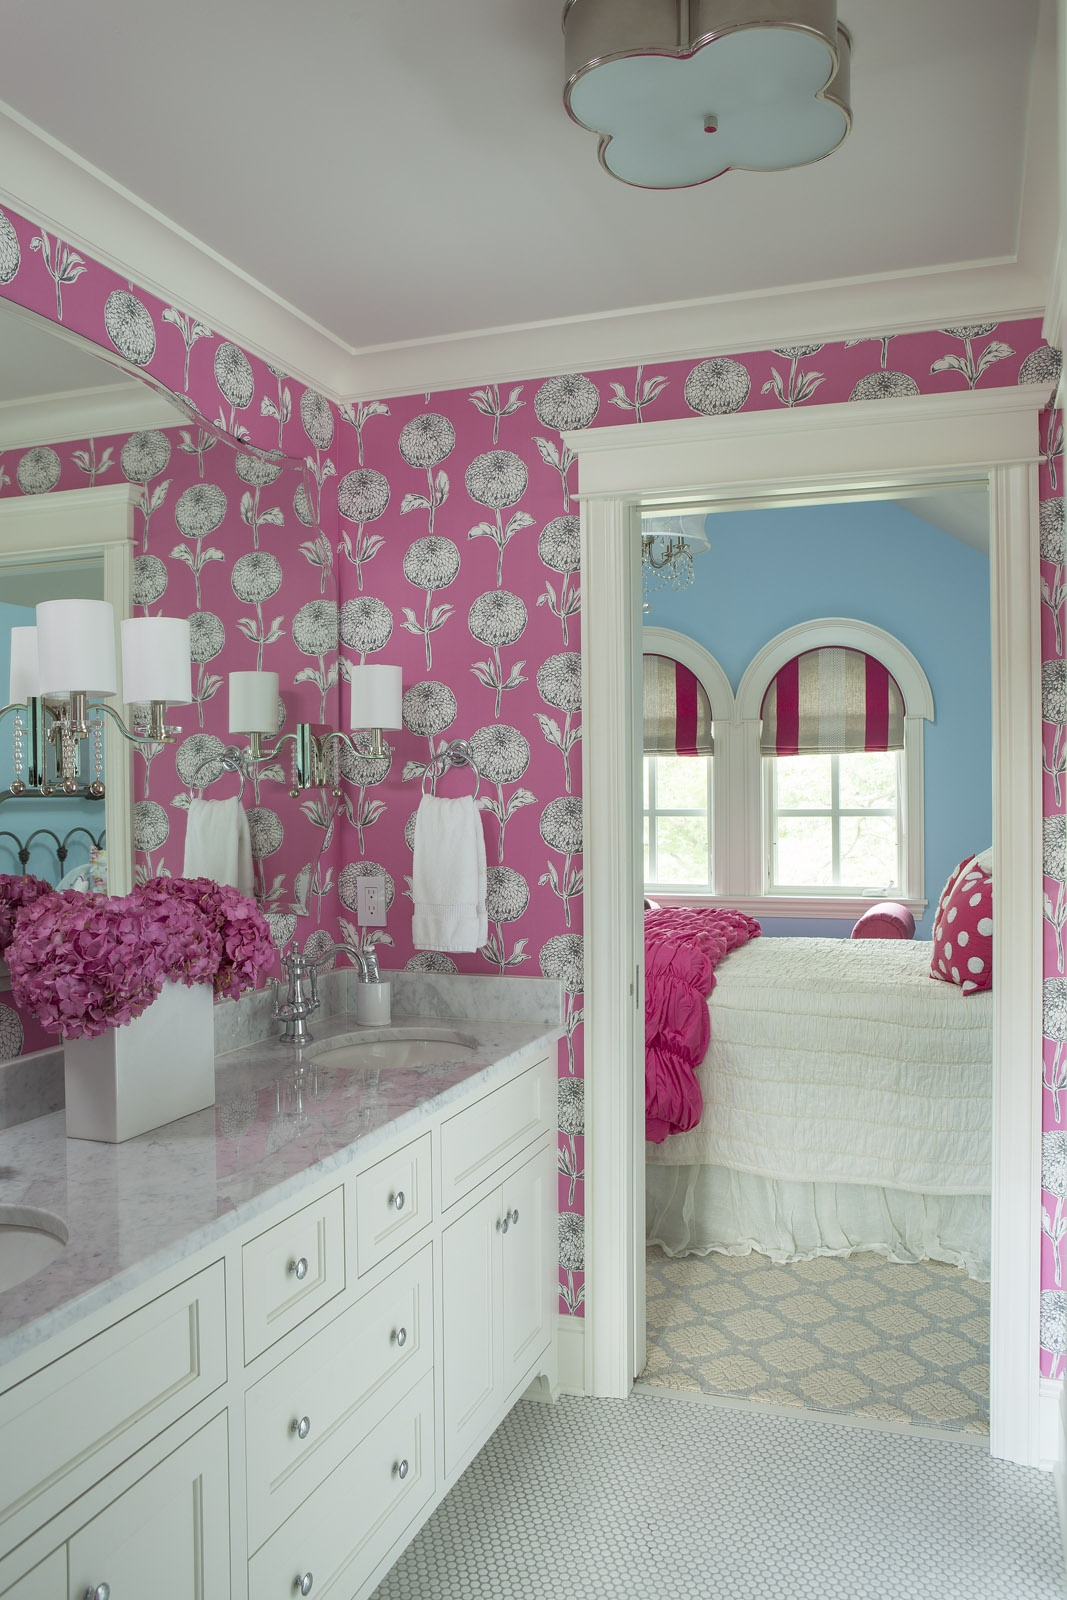 15 Reasons To Love Bathroom Wallpaper